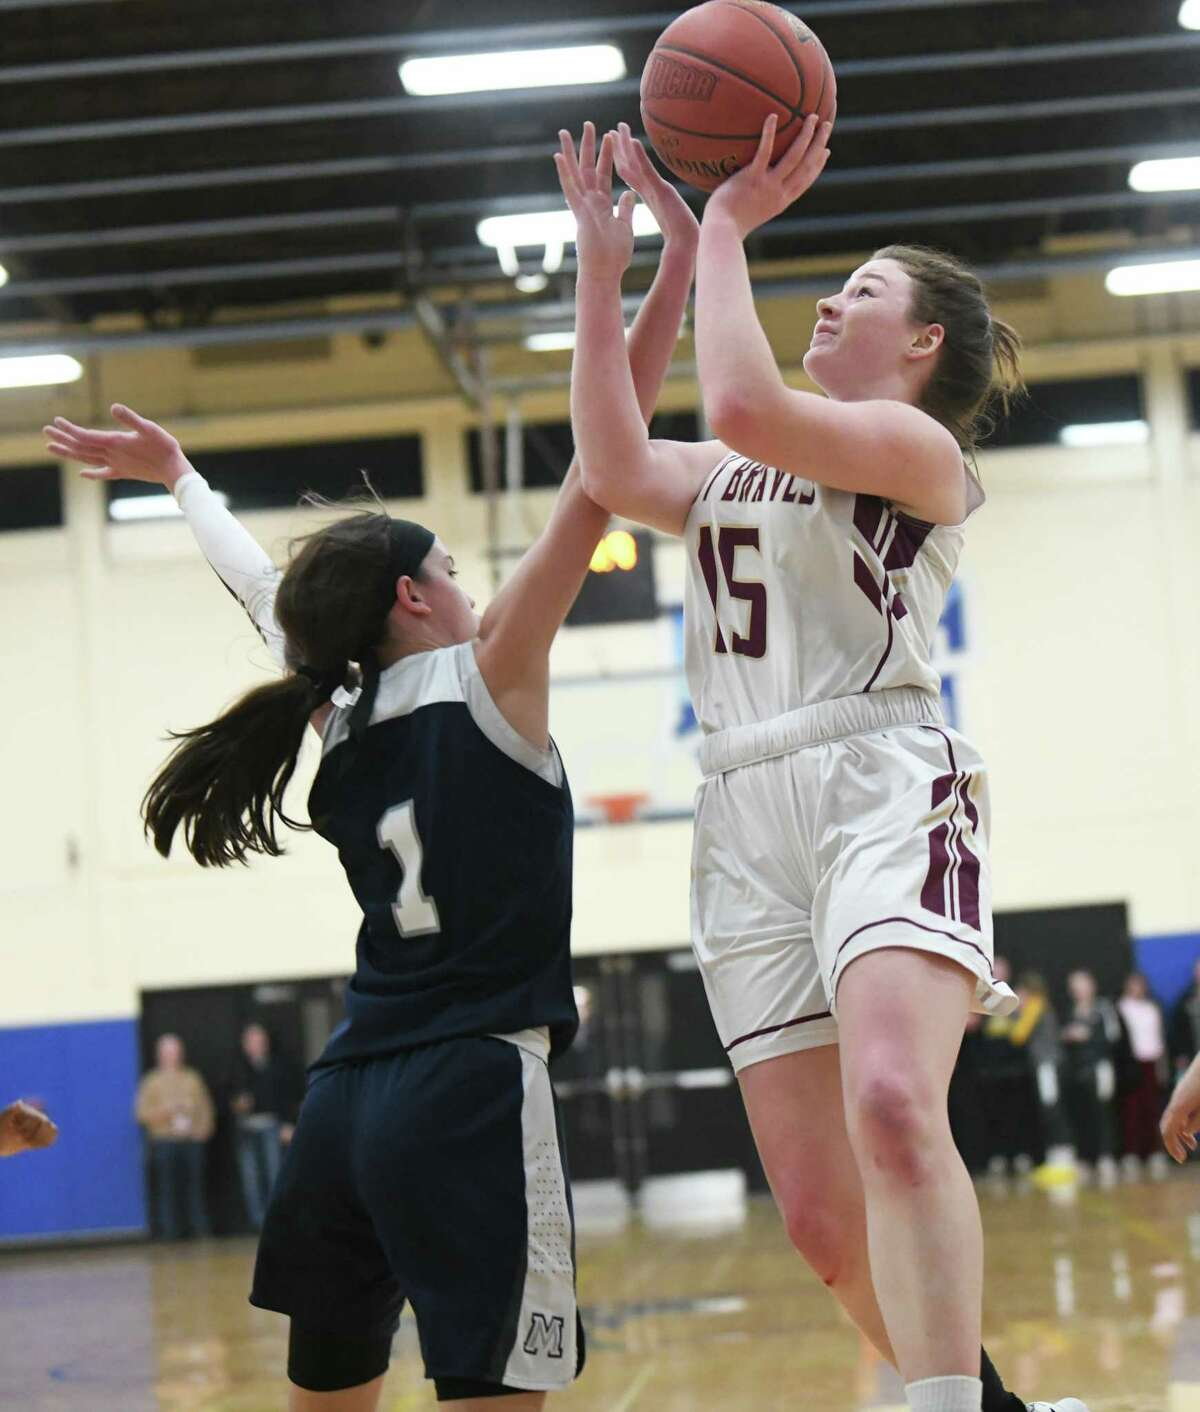 Fonda's Abigail Lombardoni drives to the basket against Mekeel Christian Academy's Avery Mills during a game at Fulton Montgomery Community College on Tuesday, Feb. 18, 2020 in Johnstown, N.Y. (Lori Van Buren/Times Union)